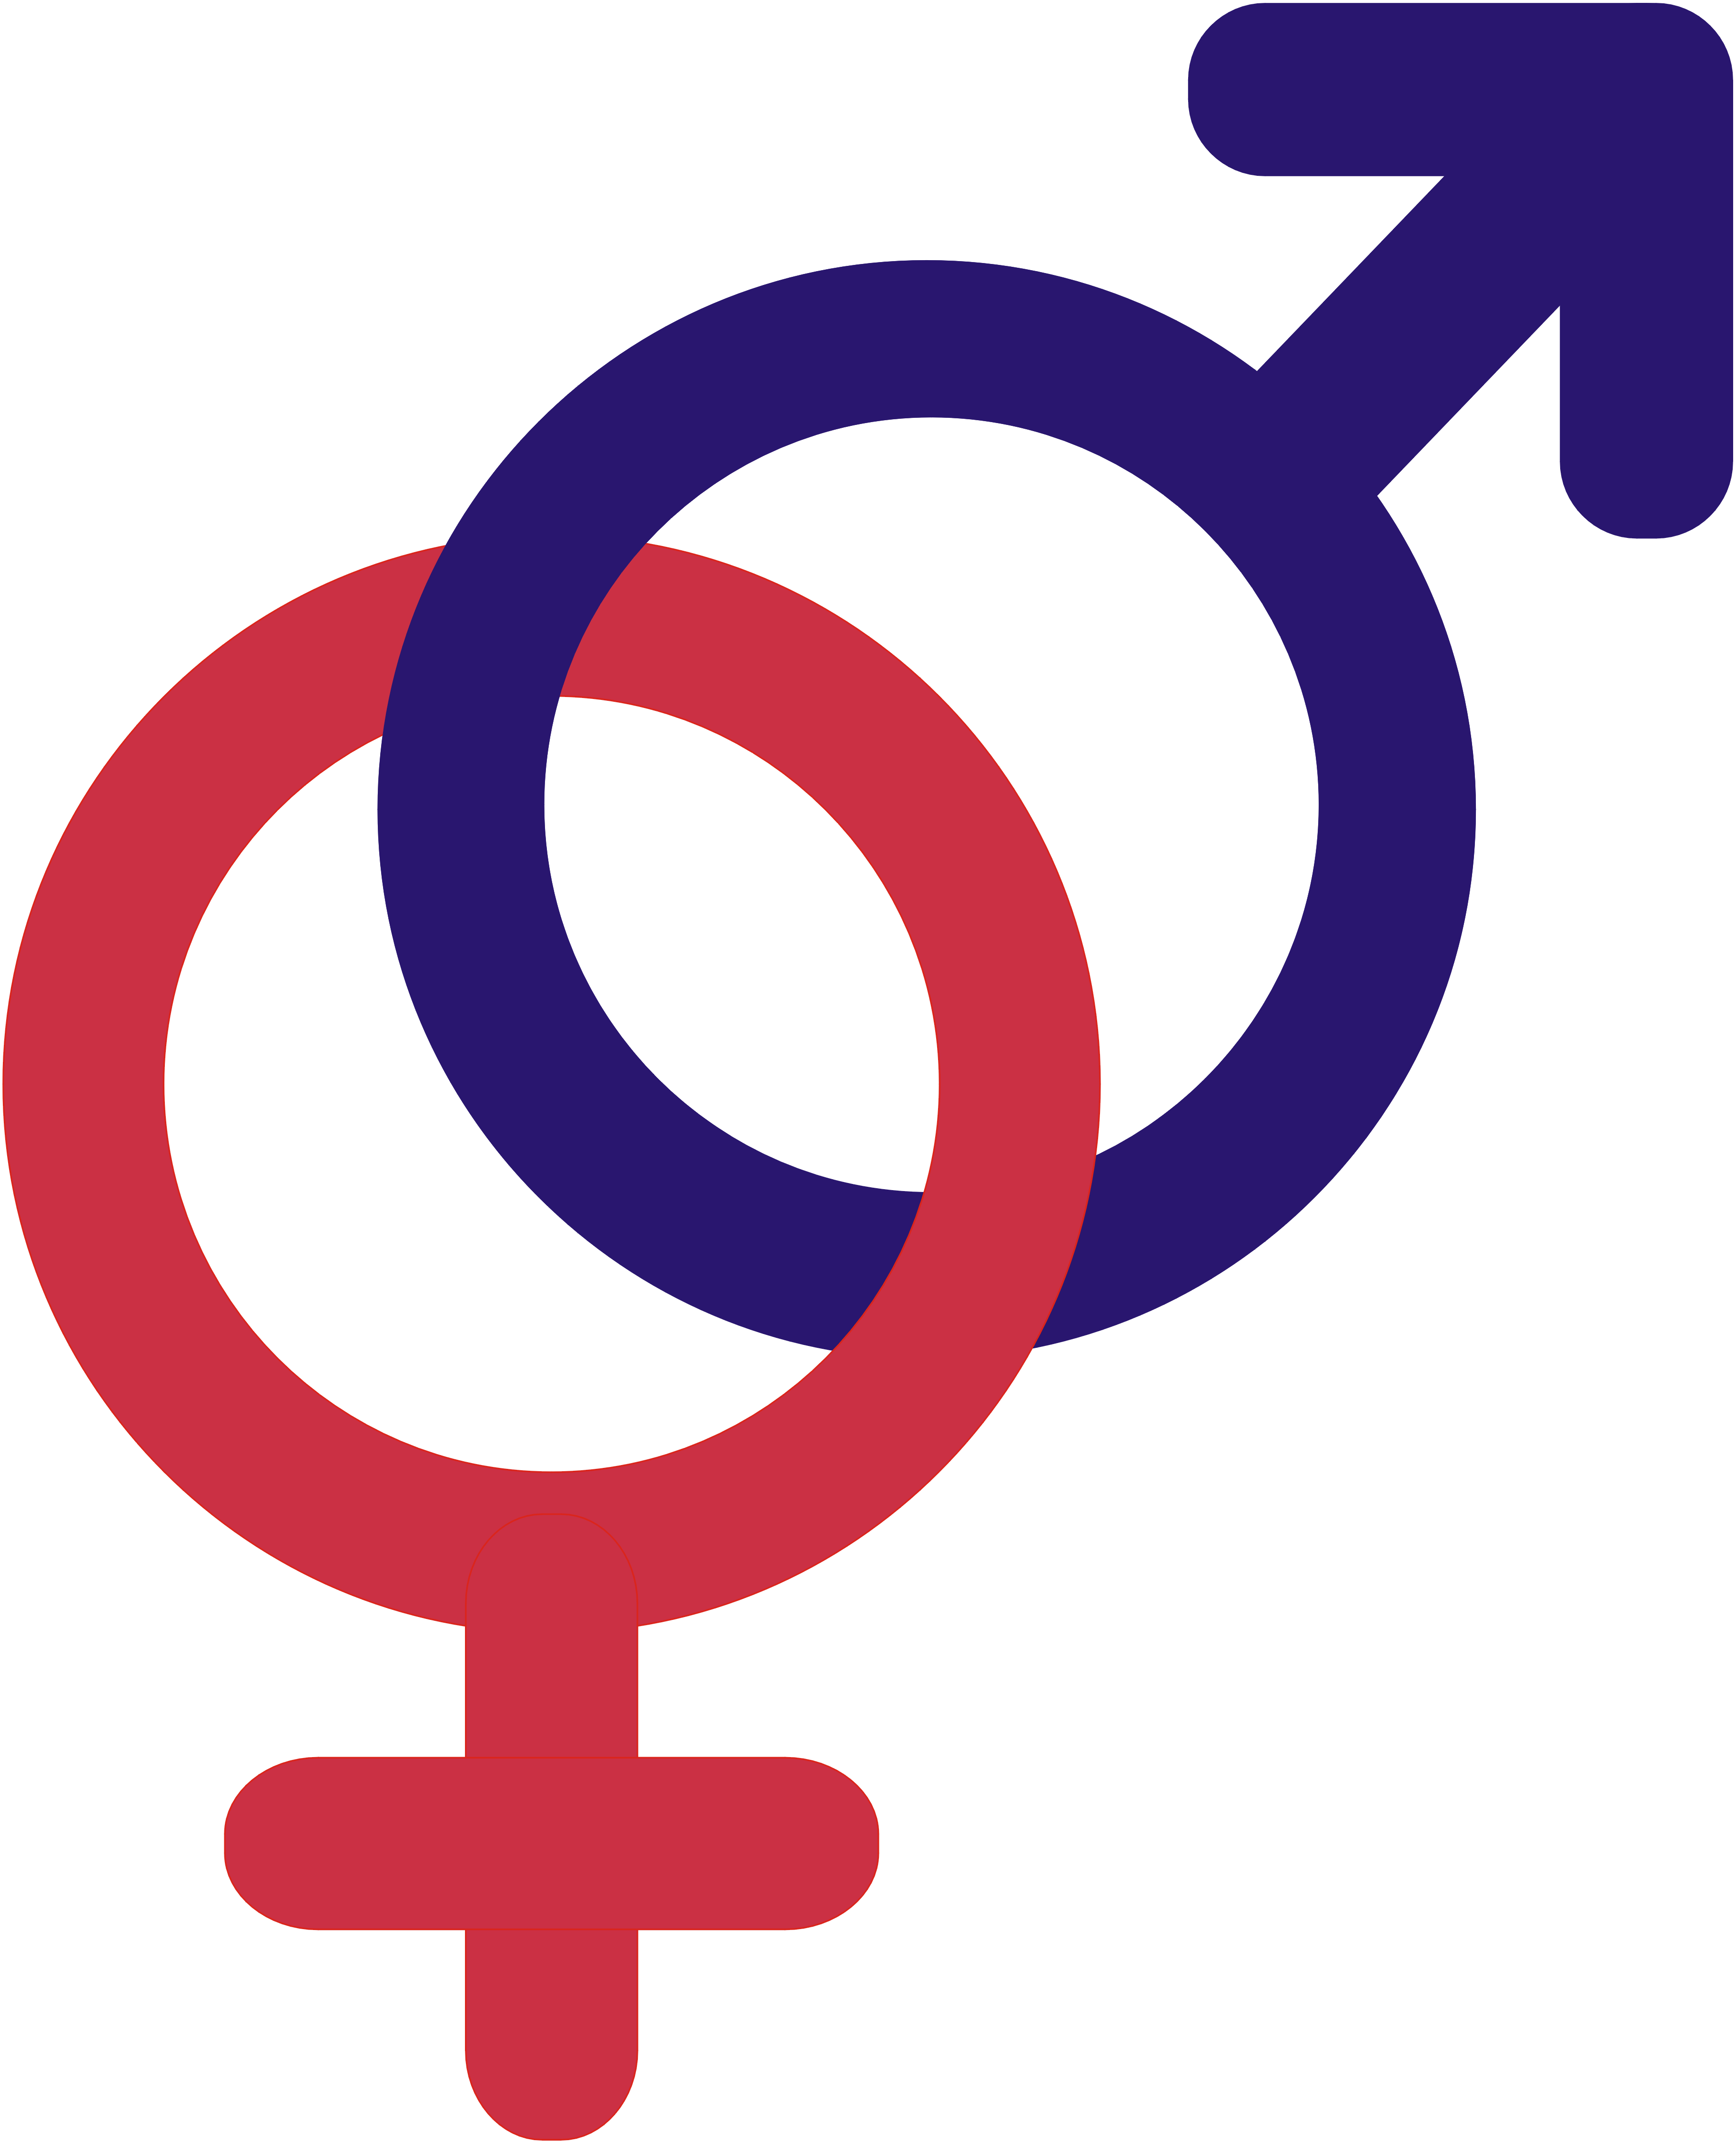 Male and female symbols, intertwined